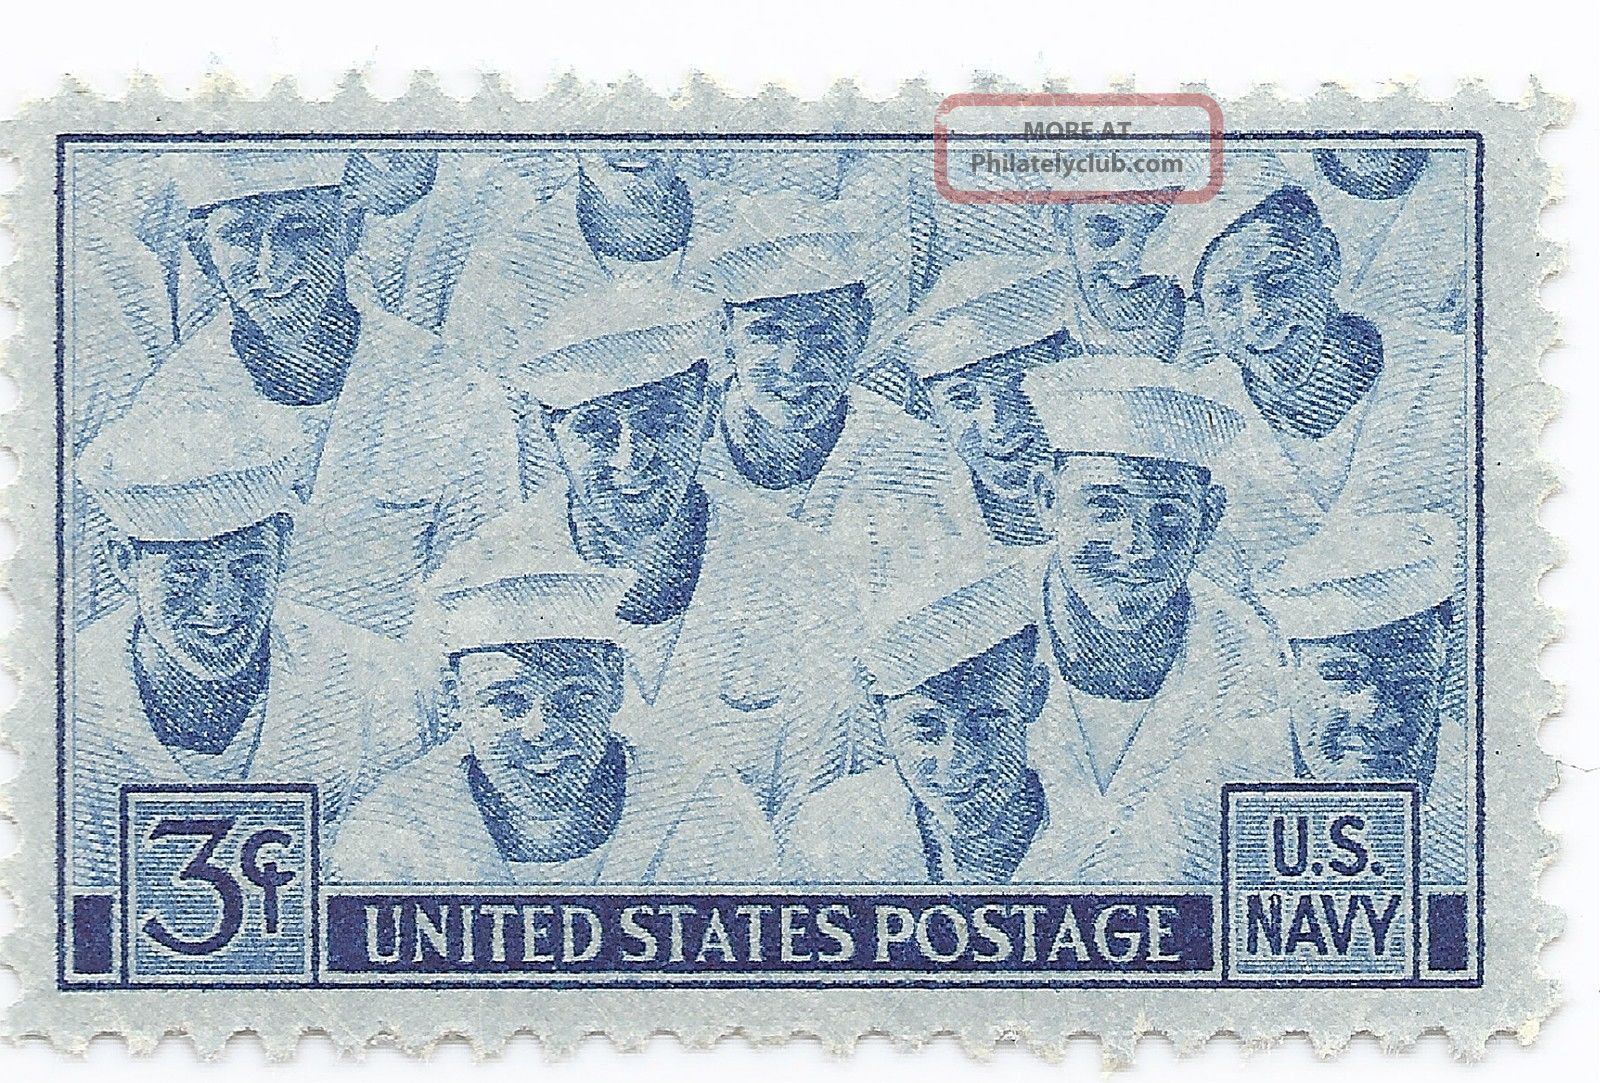 1945 U S Stamp Us Navy 3 Cent Stamp Ww2 Era Stamp P1 United States photo